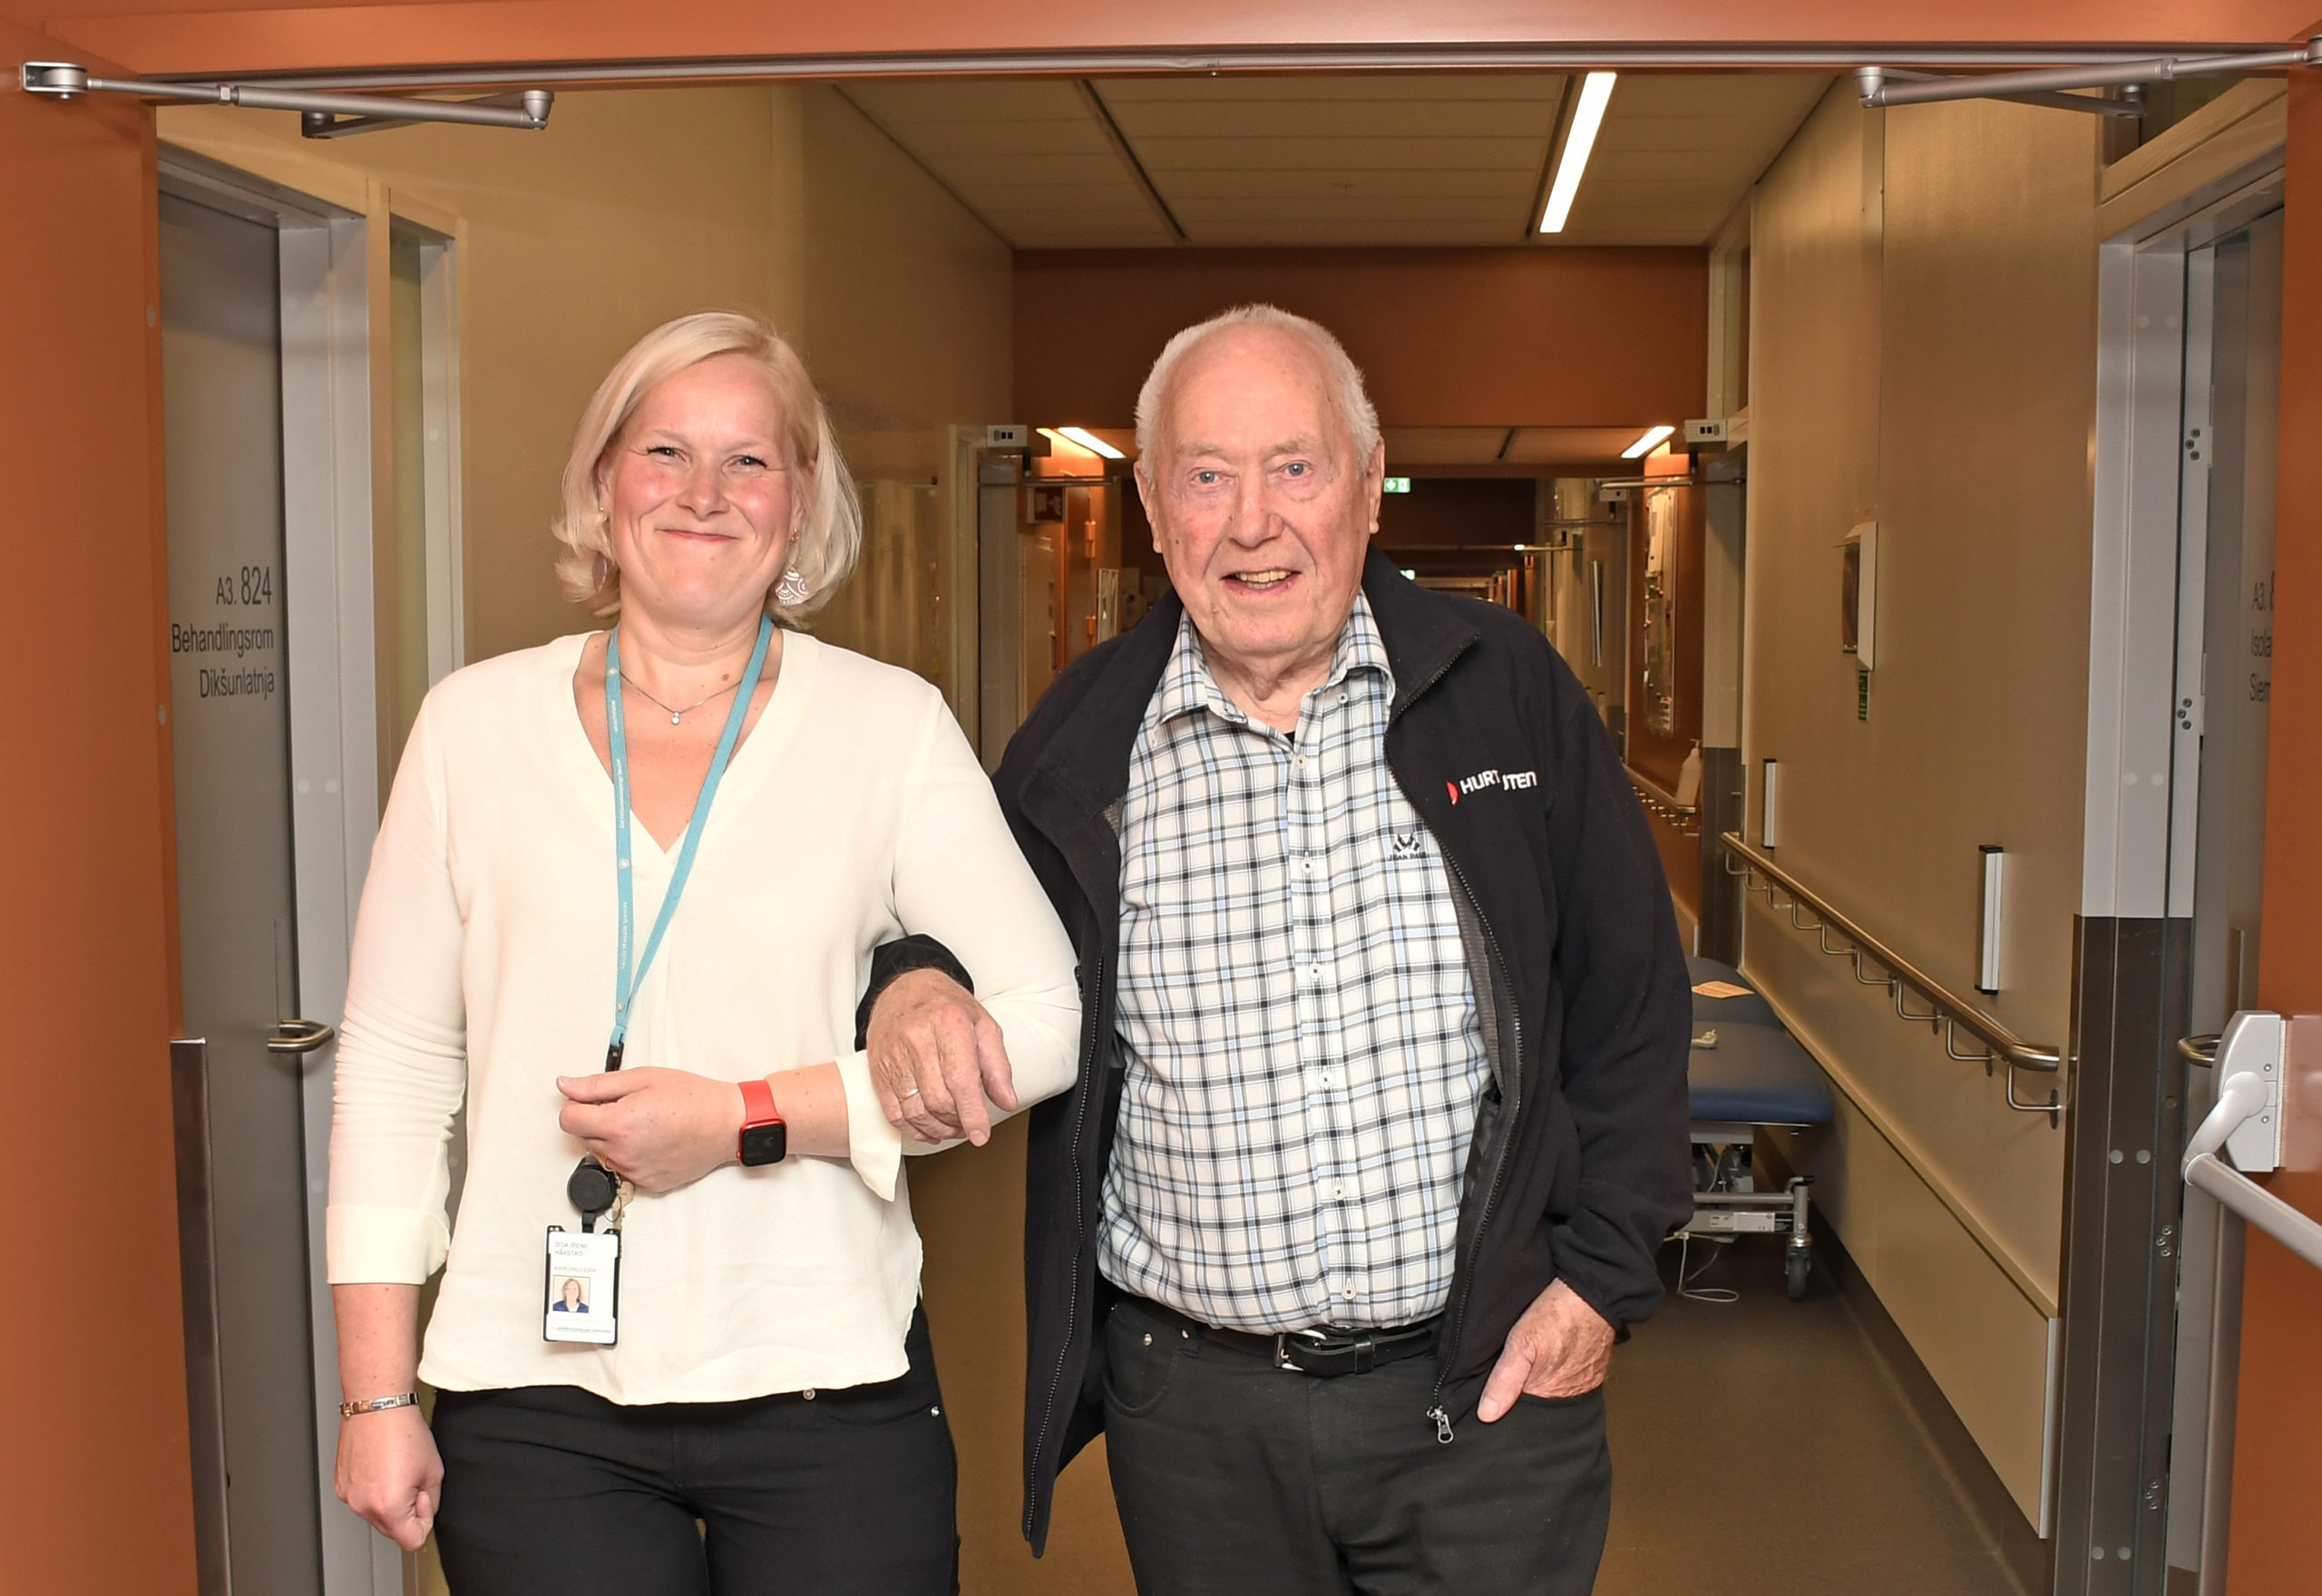 Pasient arm i arm med helsepersonell